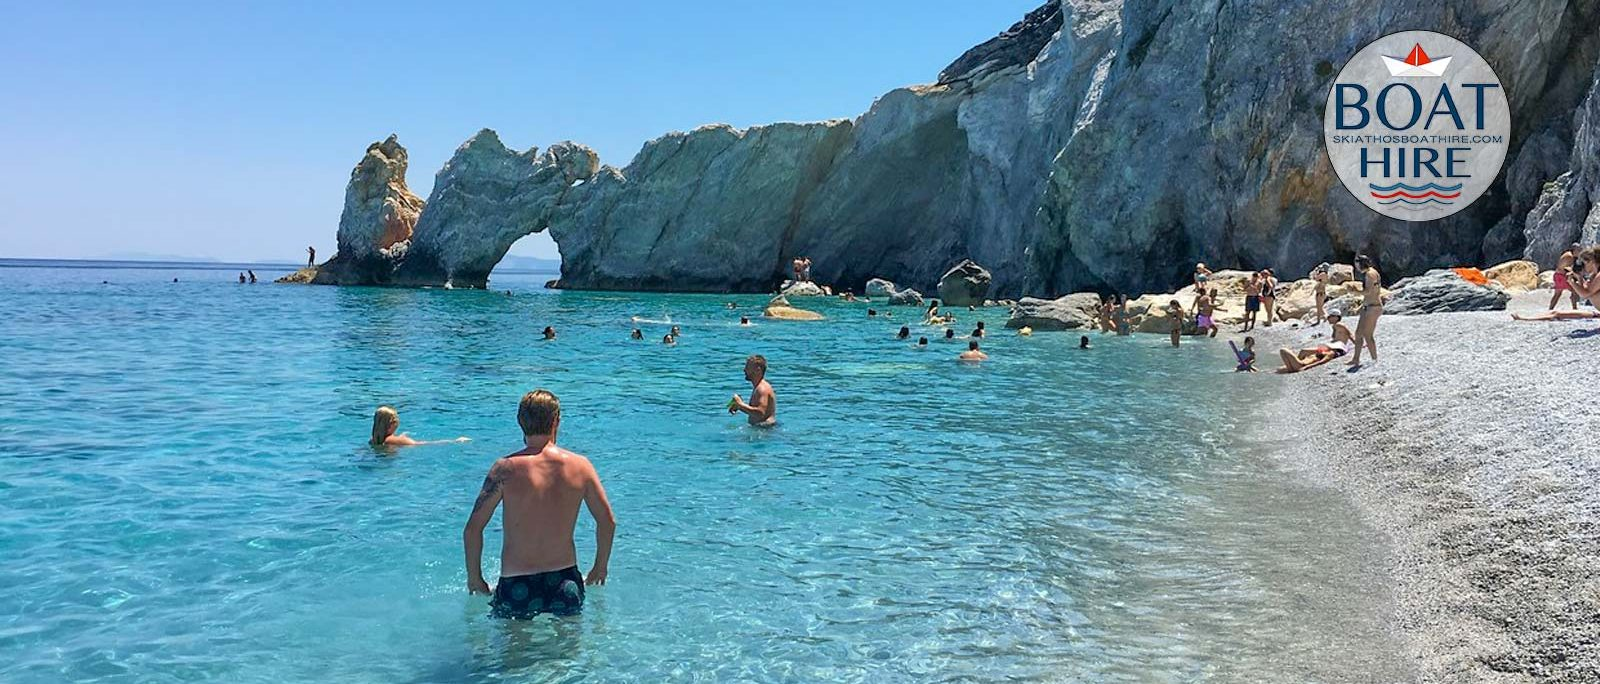 Magnificent Boat Trips to Lalaria beach with Stefano